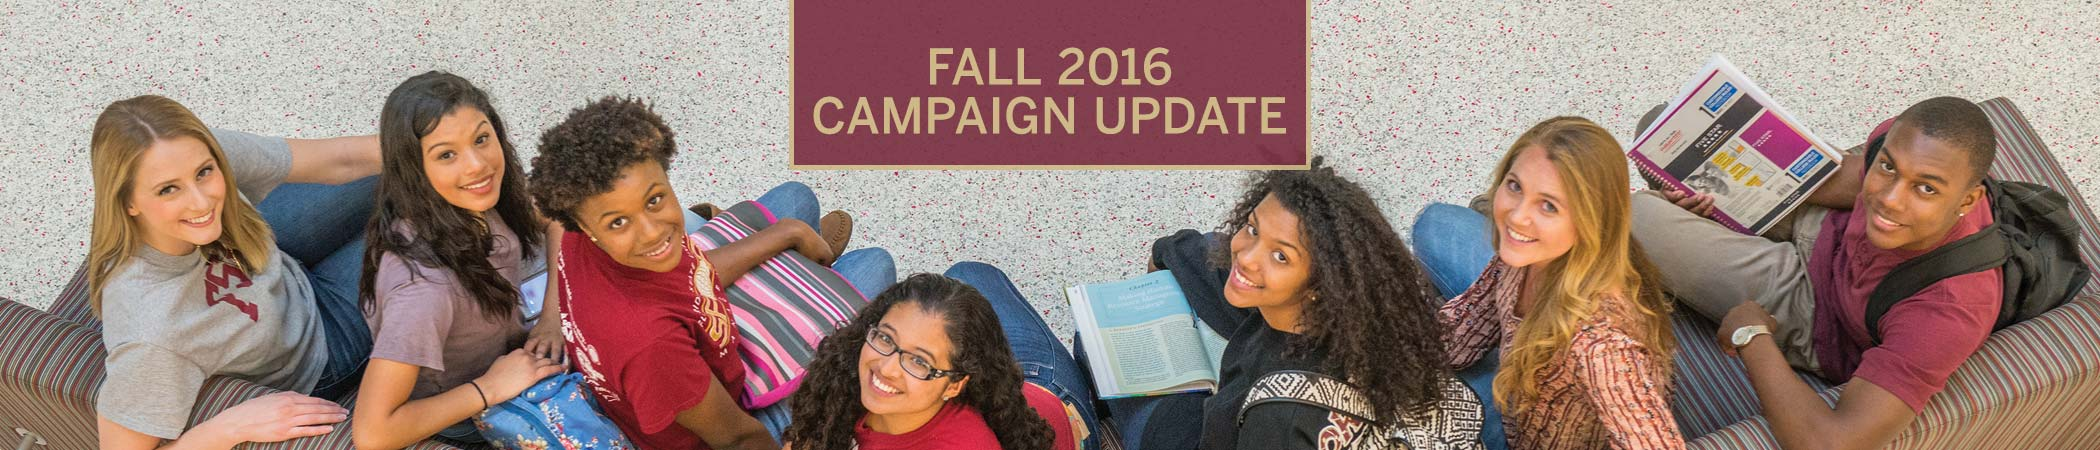 Raise the Torch Fall 2016 Campaign Newsletter